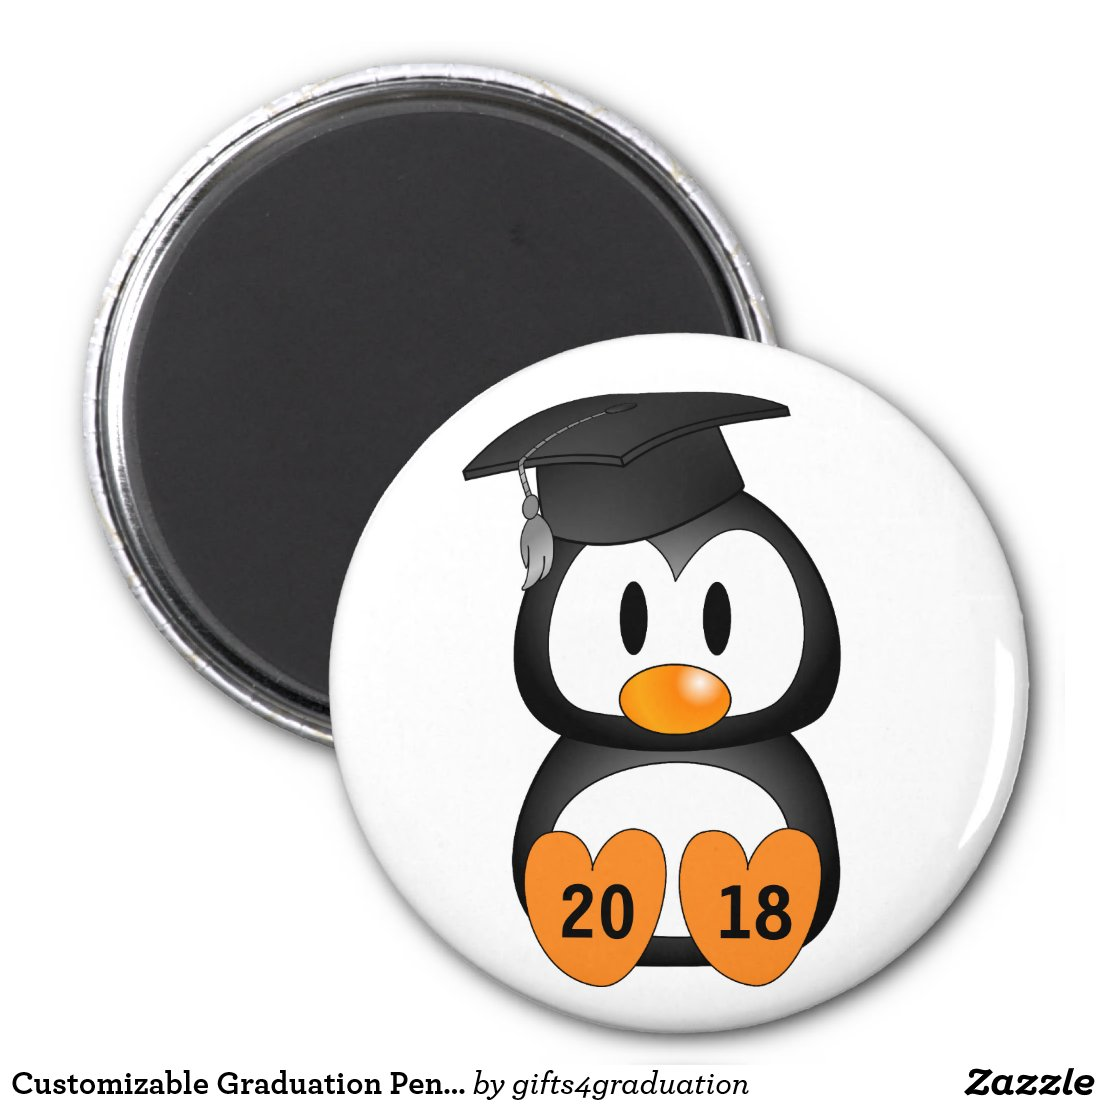 Customizable Graduation Penguin Magnet